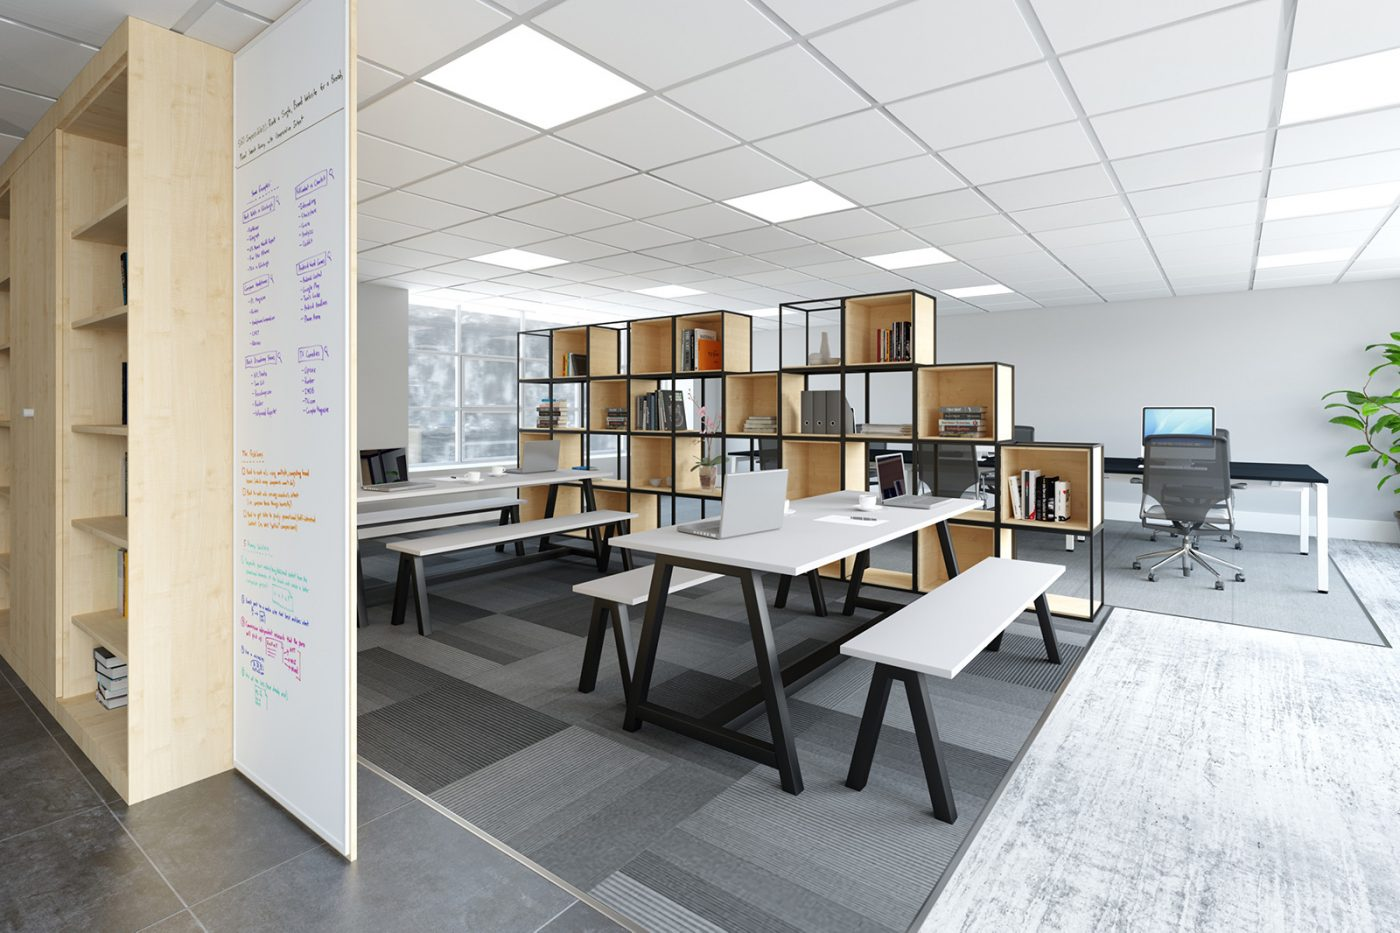 collaborative table, white table, black frame, a frame table, meeting table, breakout table, office table